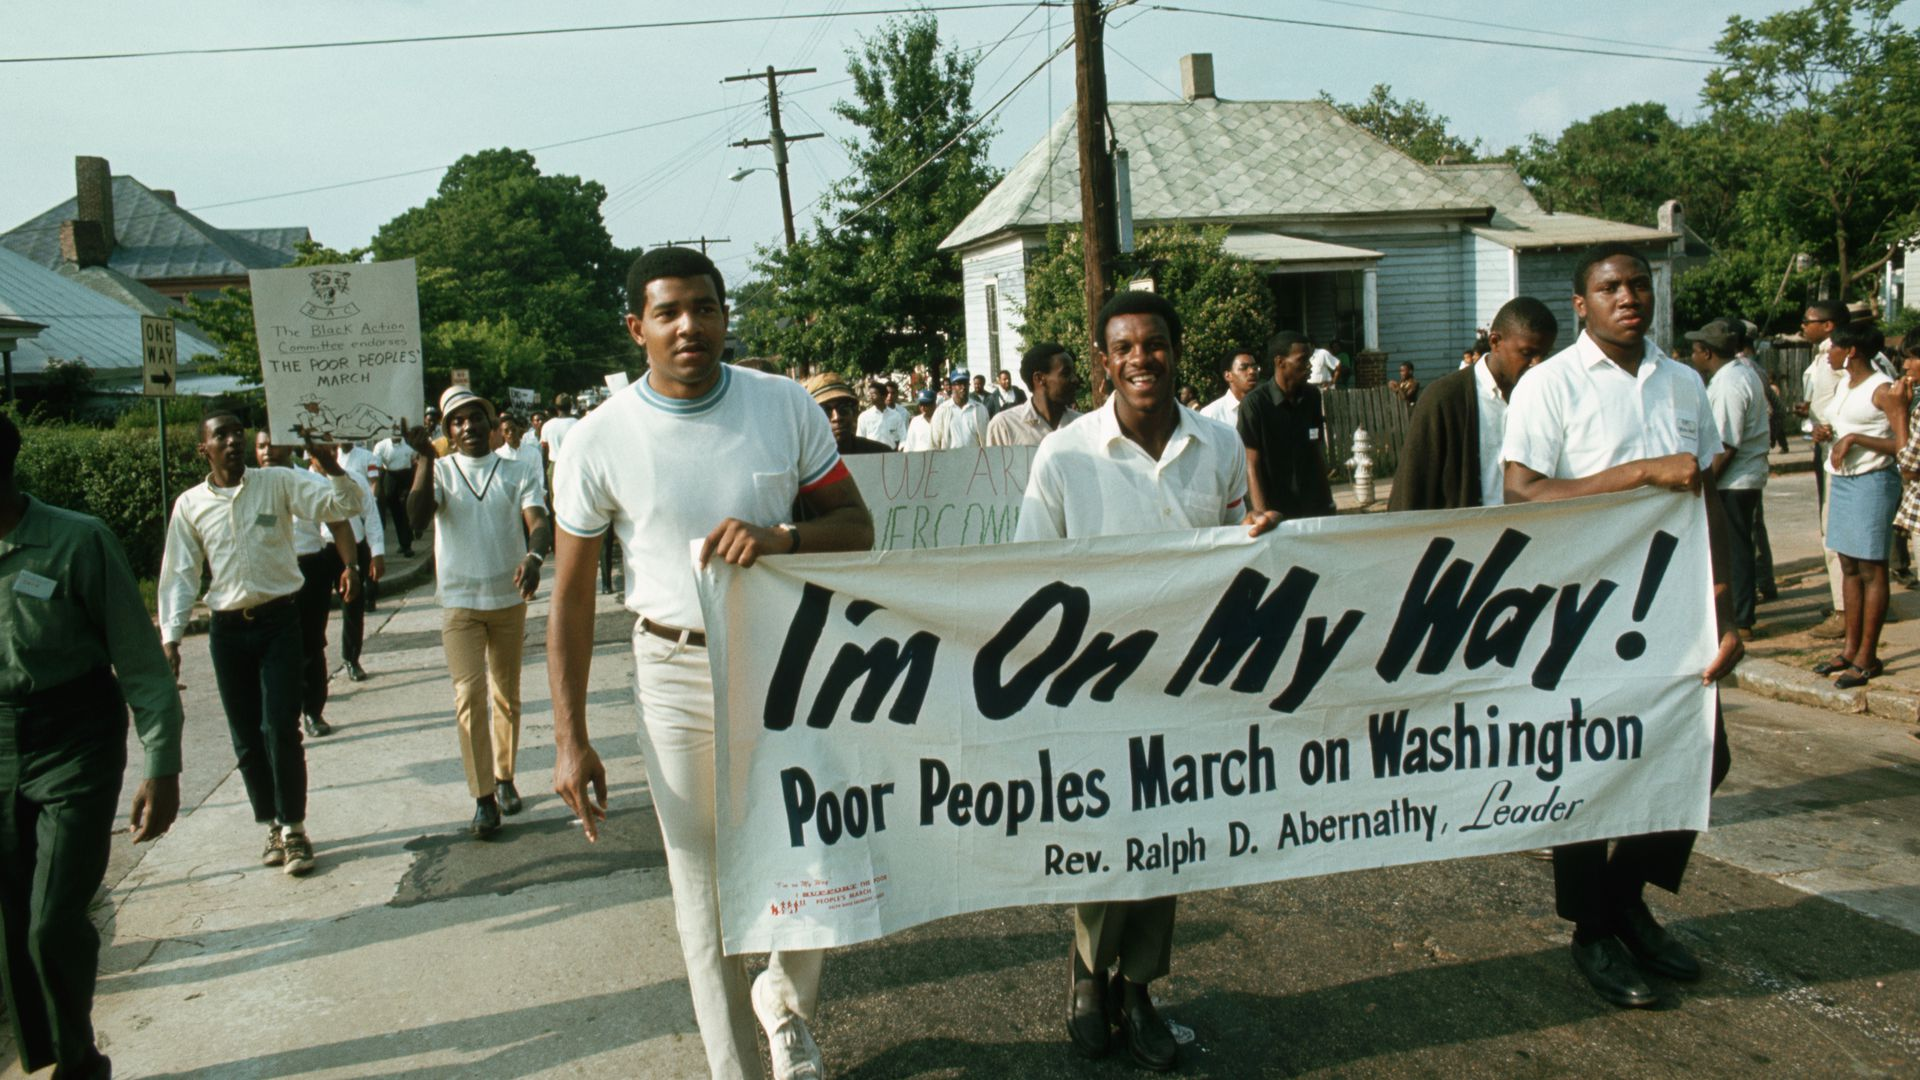 Protestors march for the Poor People's Campaign in Alabama, 1968